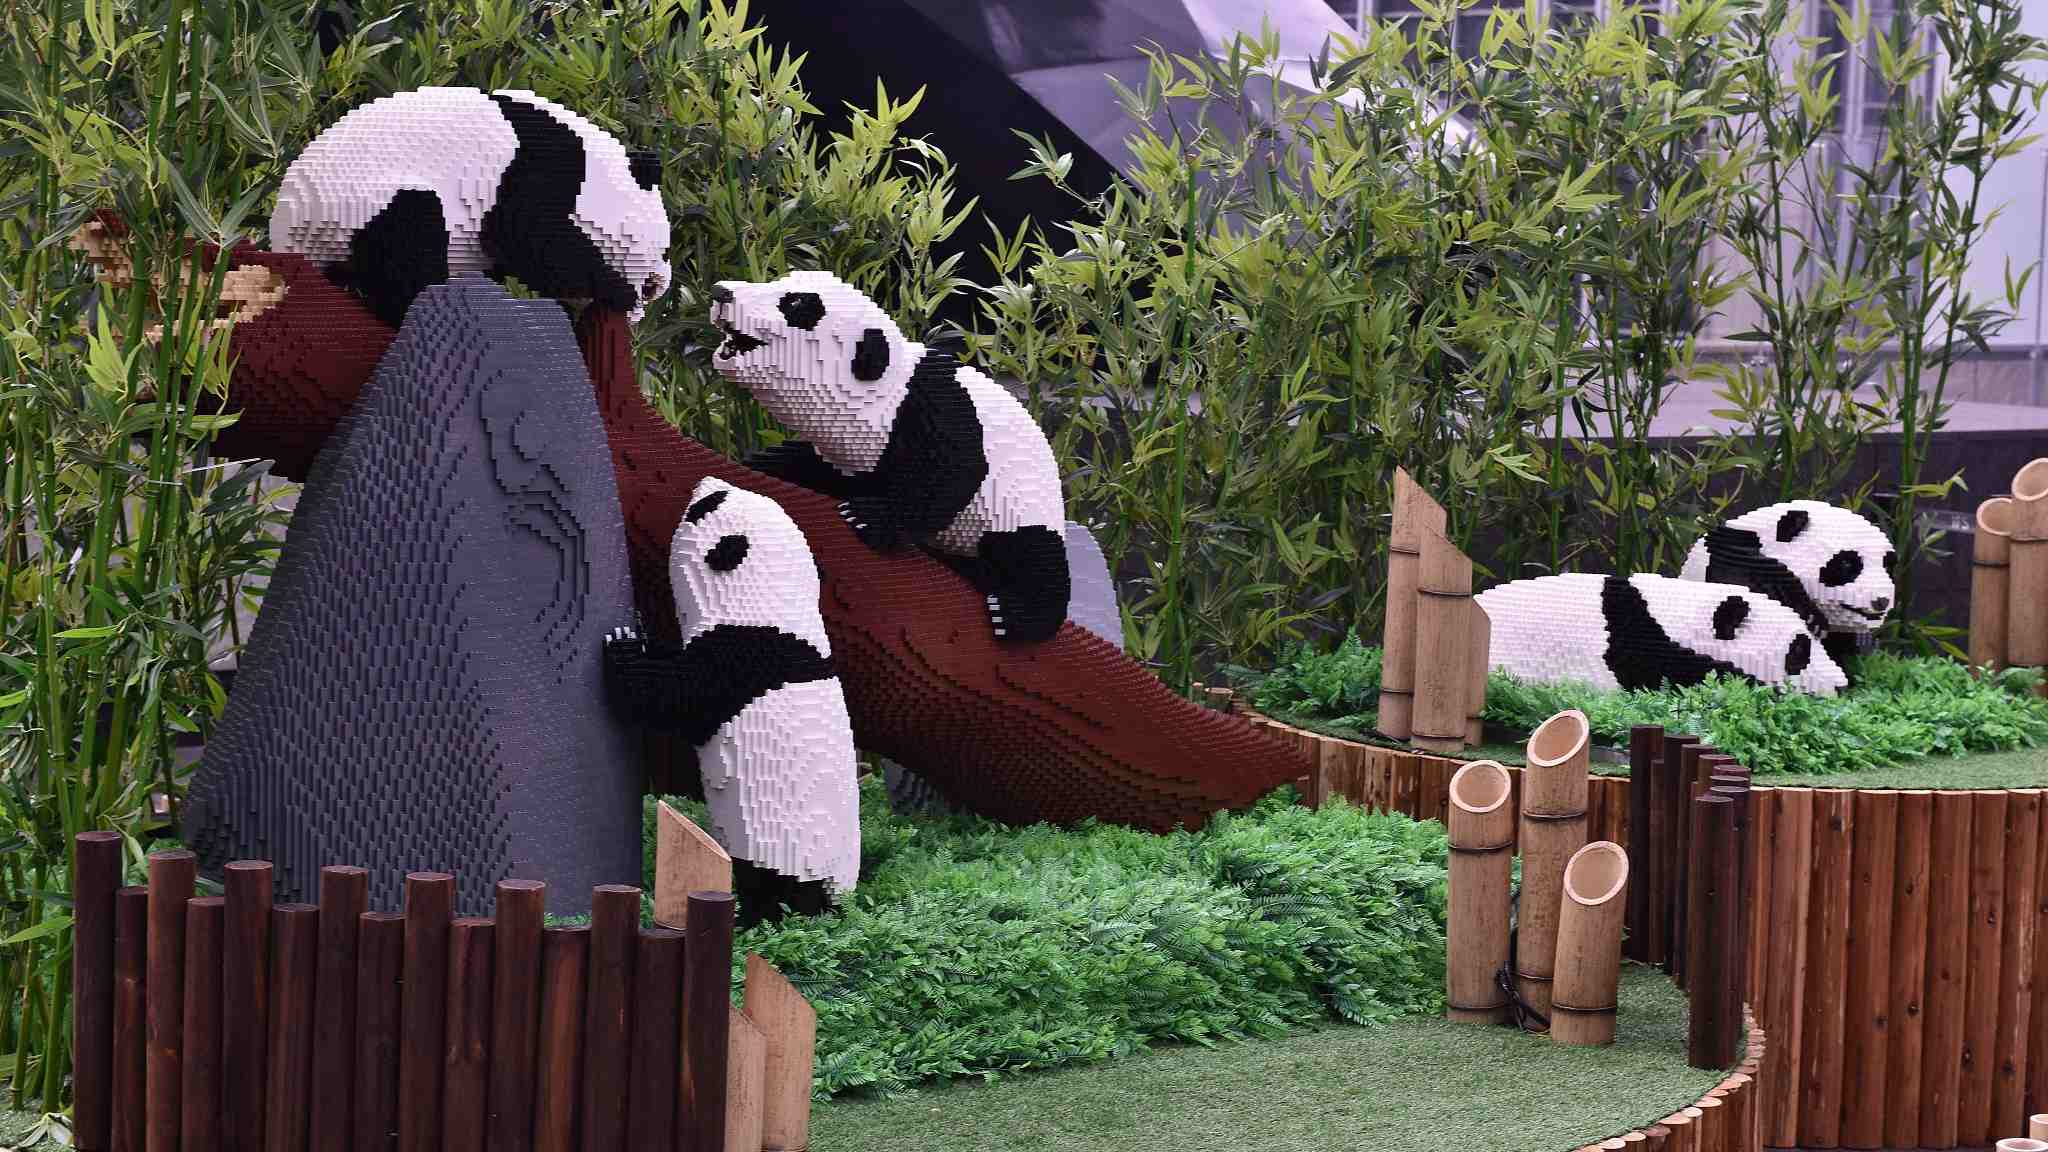 China's shopping mall brings LEGO zoo to outdoor lawn